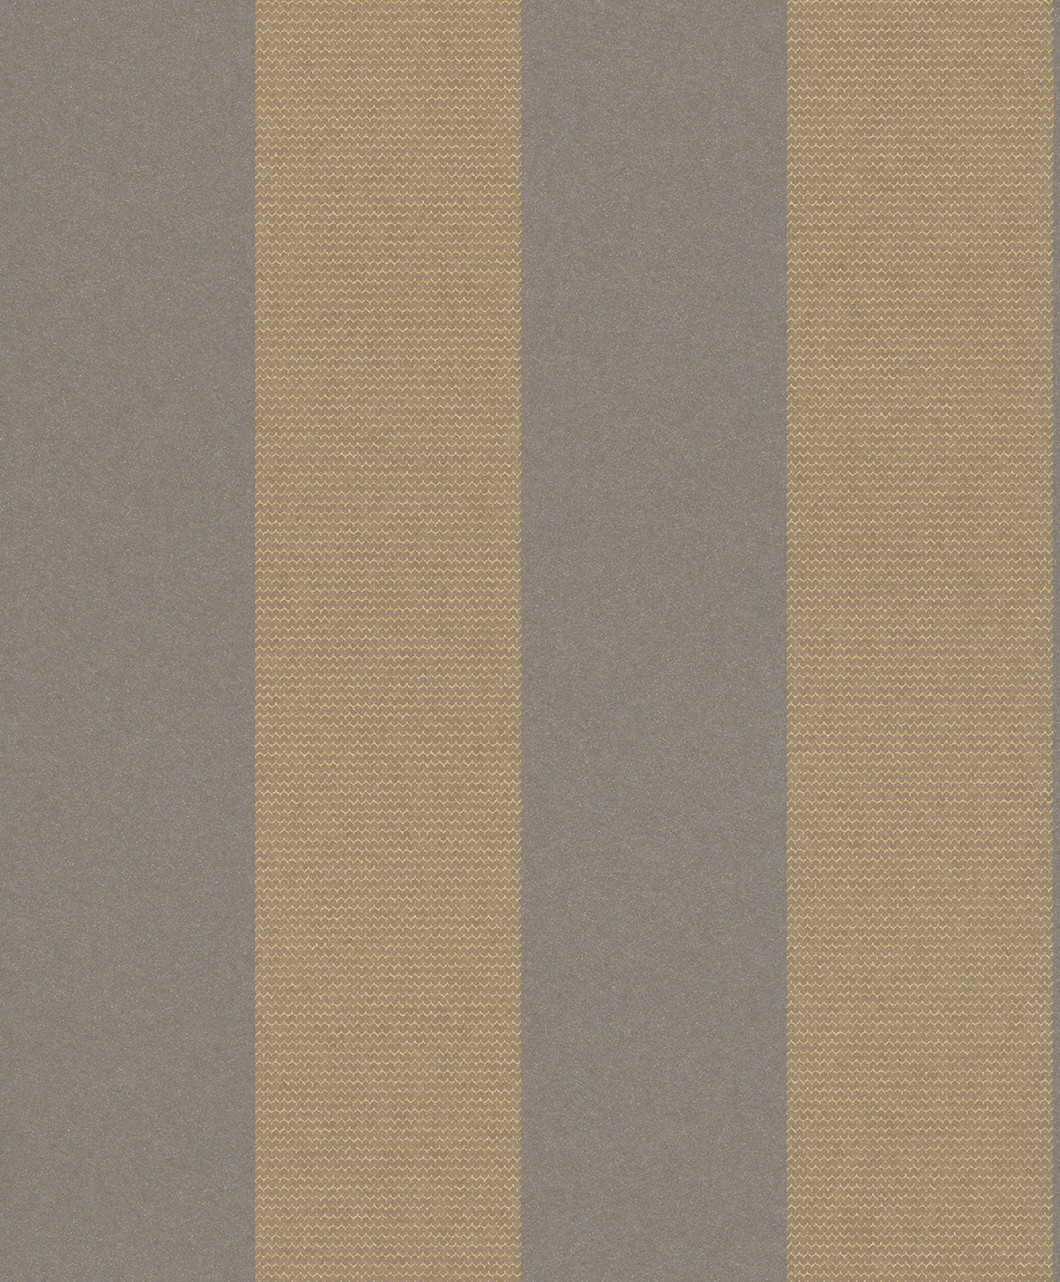 Tapete vlies streifen metallic braun gold rasch textil for Tapete braun gold